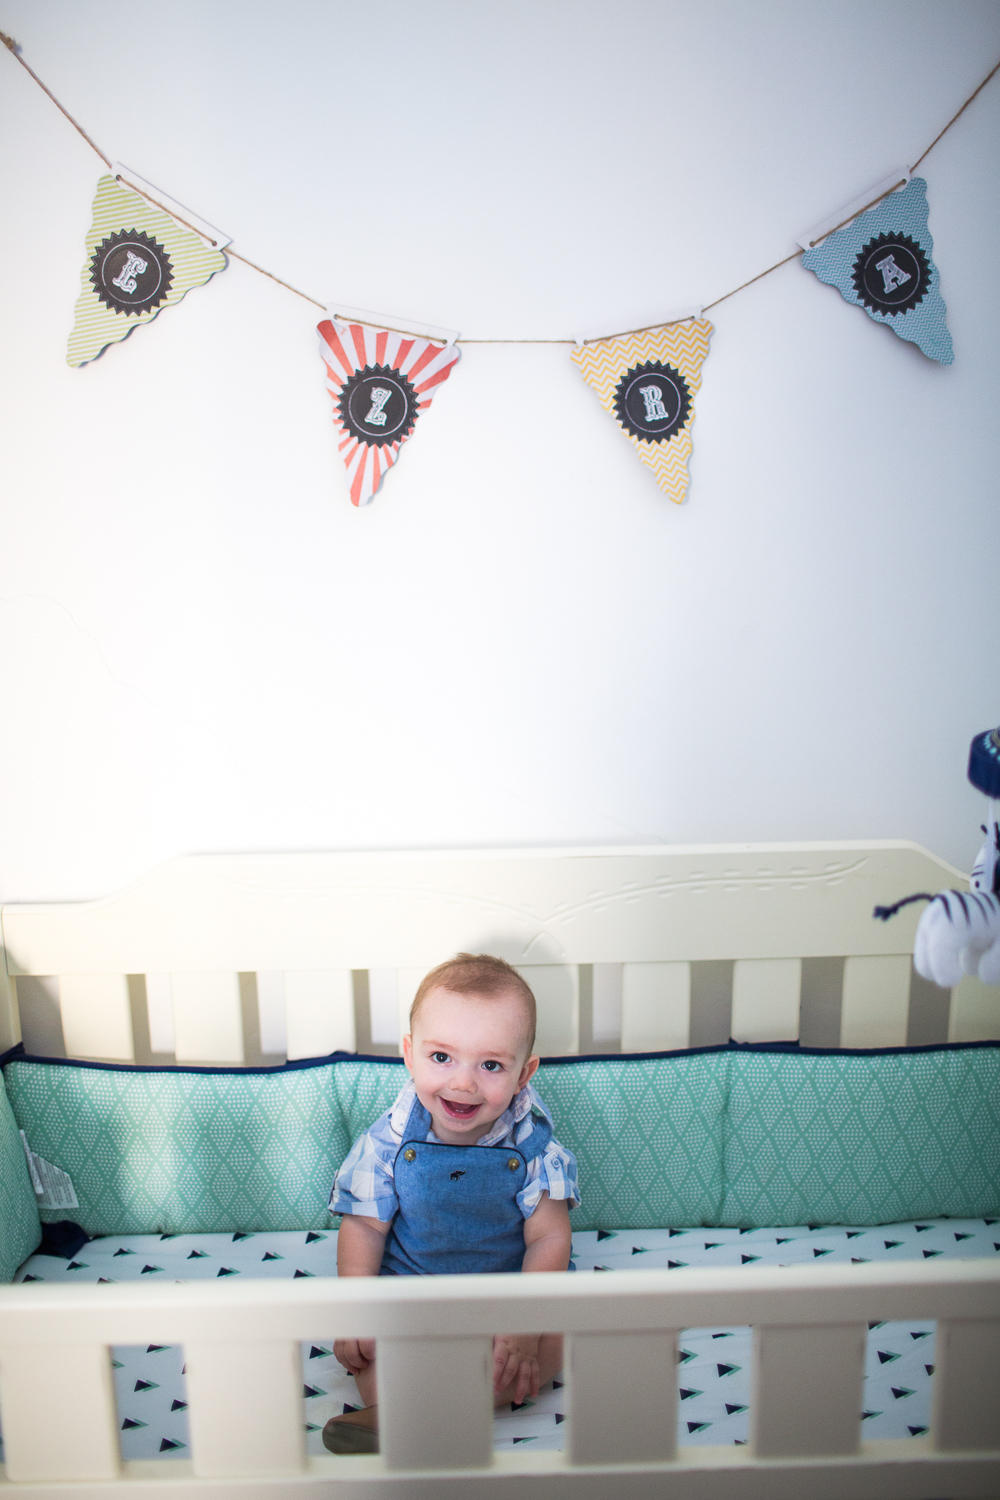 So I can't believe I don't have more photos of the nursery/guest room. I guess we spend the least amount of time in this room, because half of the year Ezra sleeps with us due to only running the a/c in one room, but here's the best photo I could find of his crib.